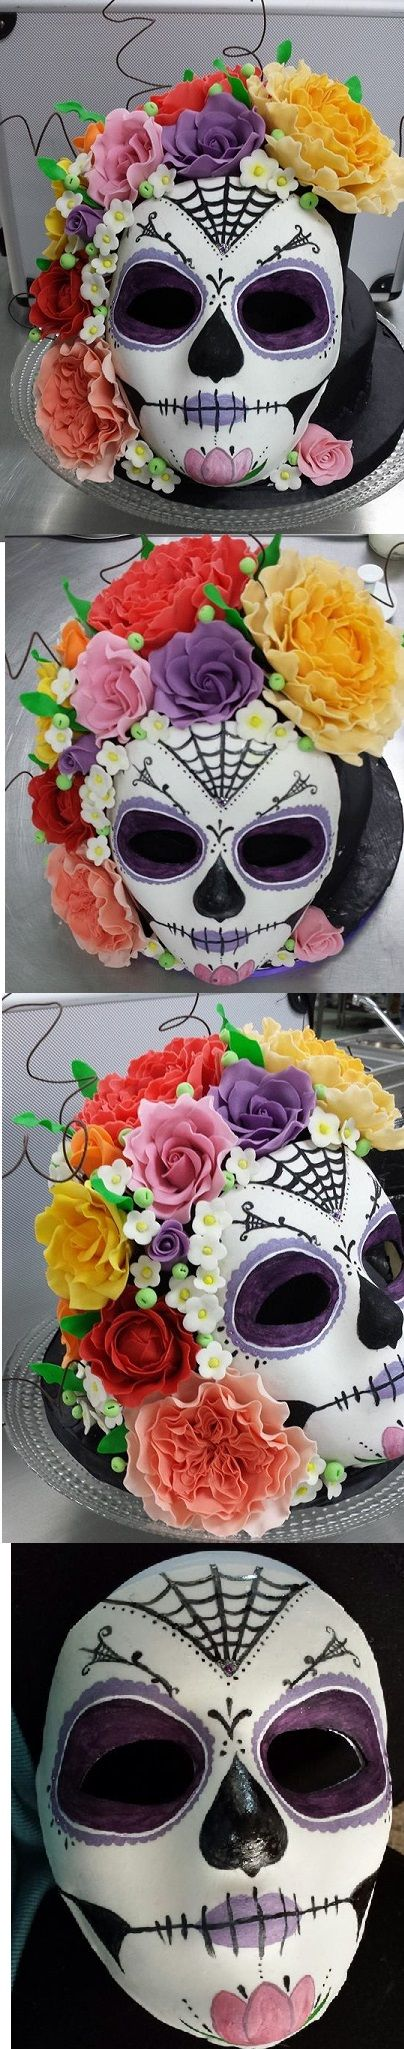 Sugar Skull I'm so happy how this turned out, I really wanted to make a cake that was out of the norm for my show piece at school, I'm about to recreate it for a upcoming comp. (fingers crossed)